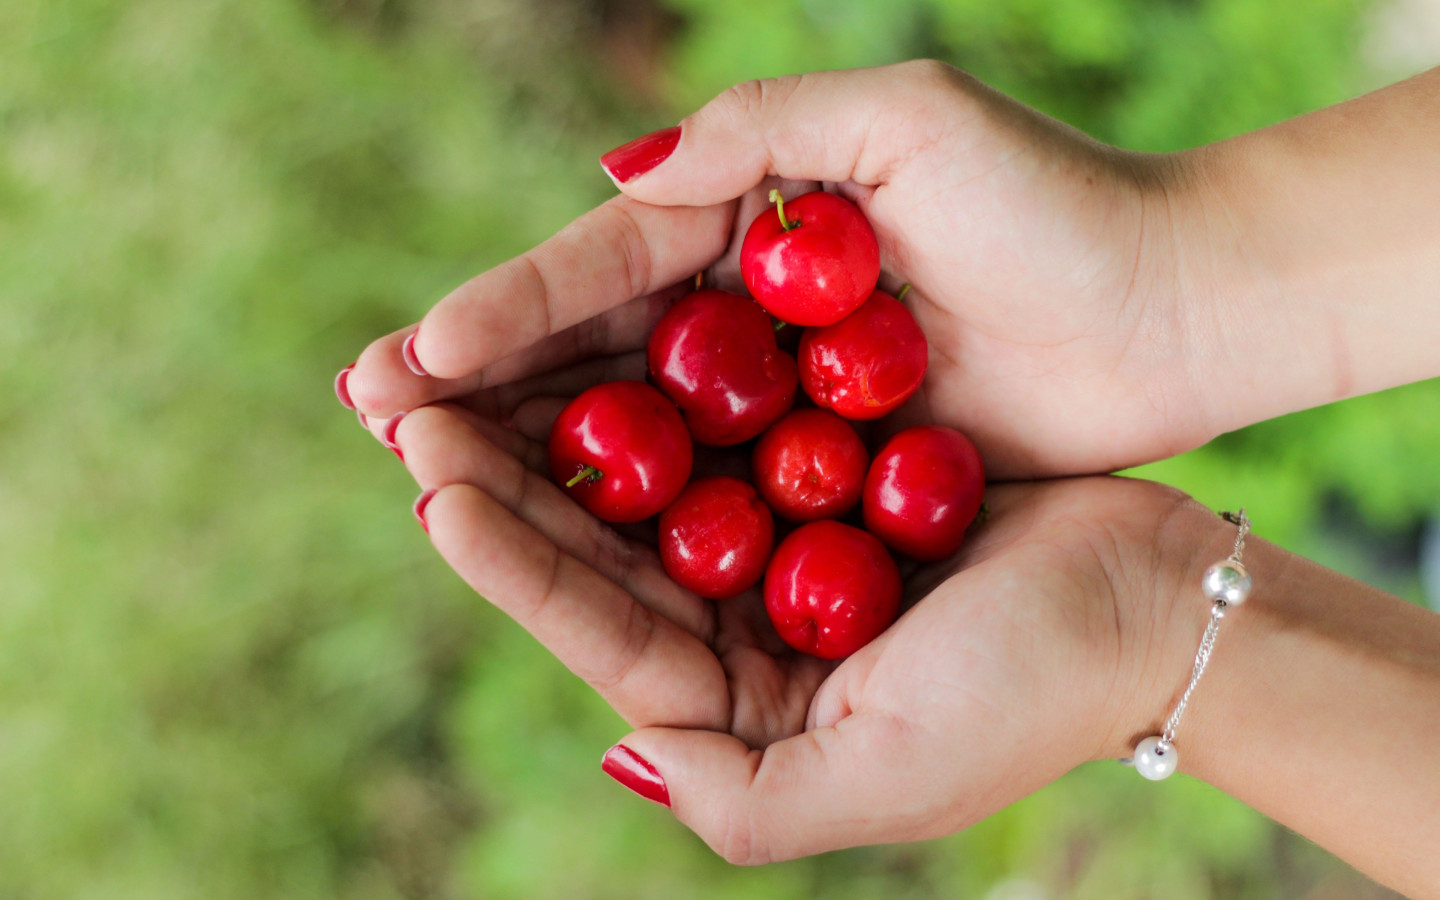 Hands filled with cherries wallpaper 1440x900